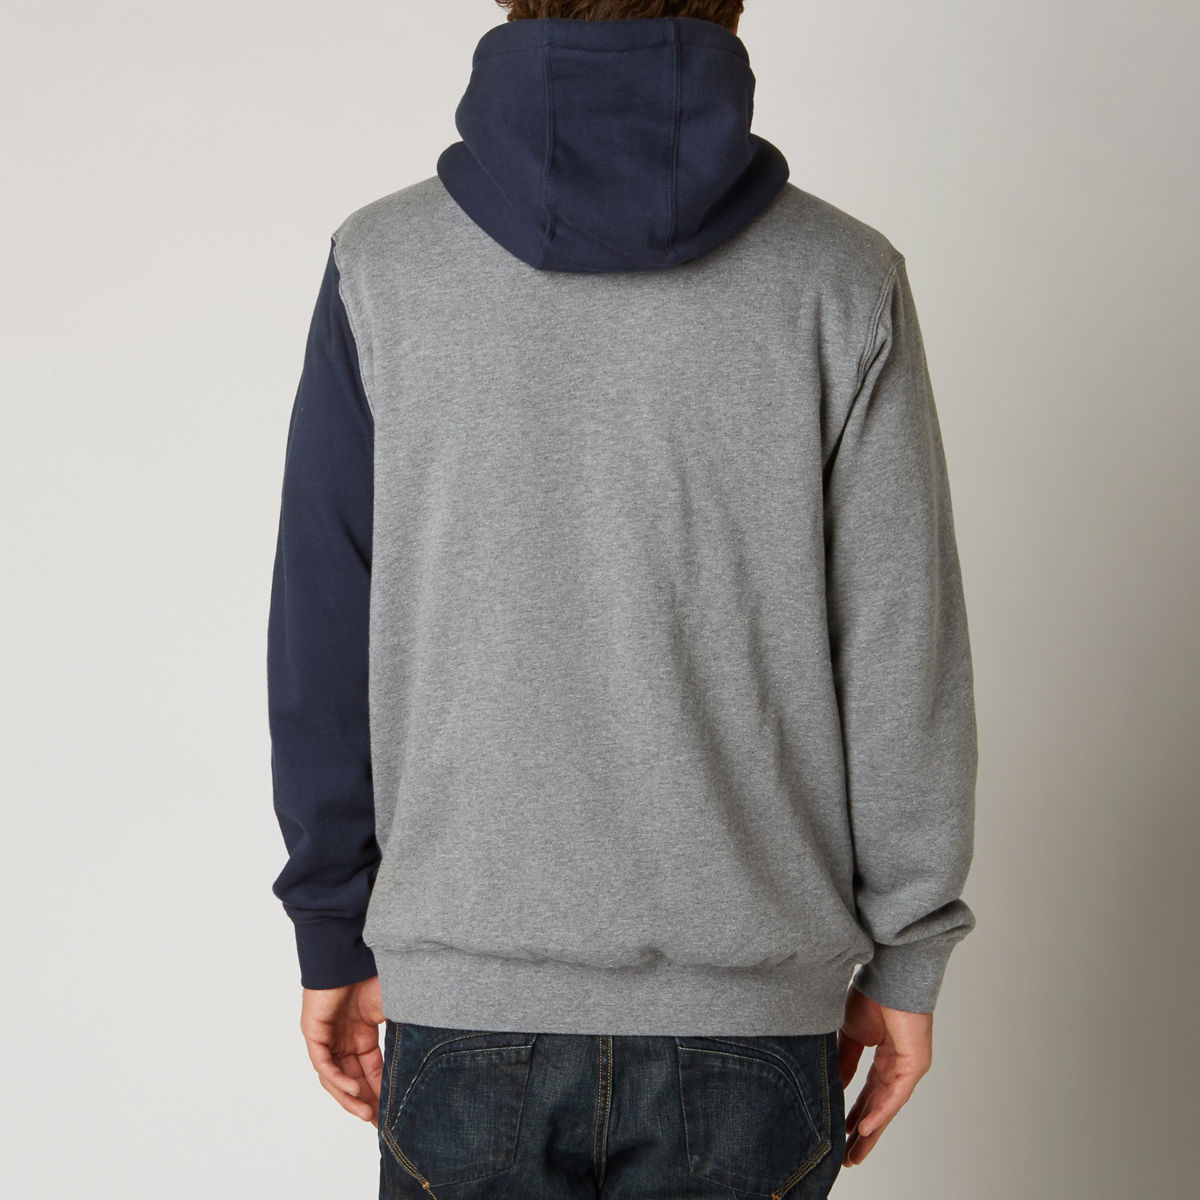 14930-199 Fox Racing Diamond Sherpa Zip Fleece Hoody Indo Trui Veste Sweat Hoody Hoodie kapuzenpullover